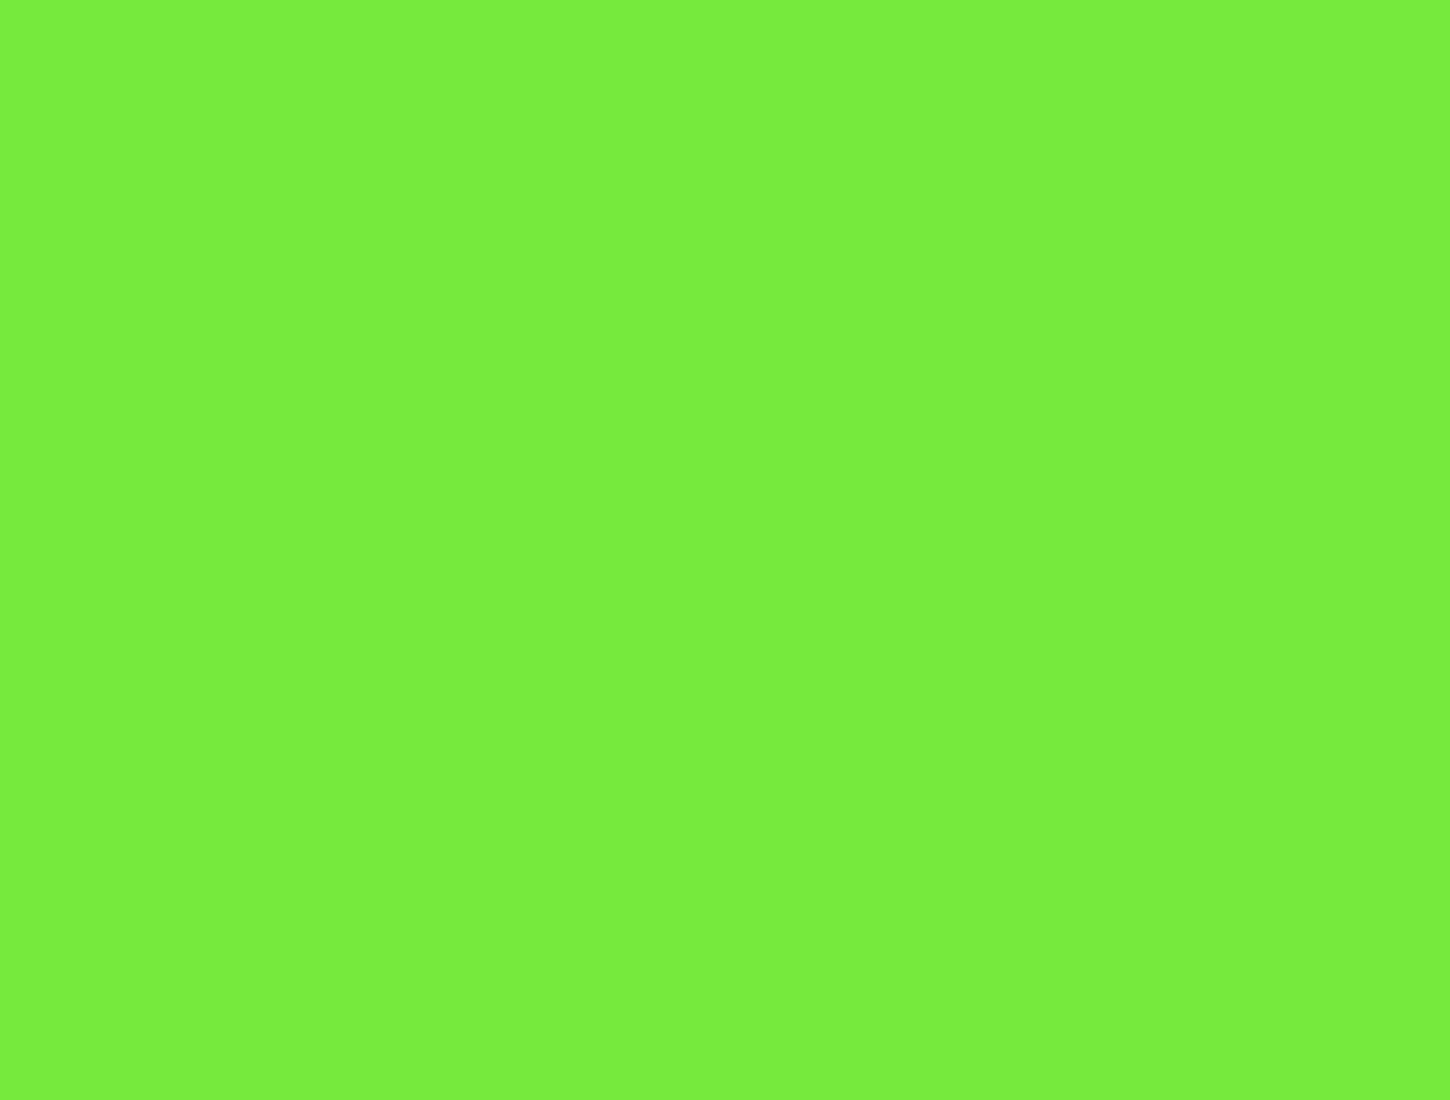 Lime Green Images - Reverse Search